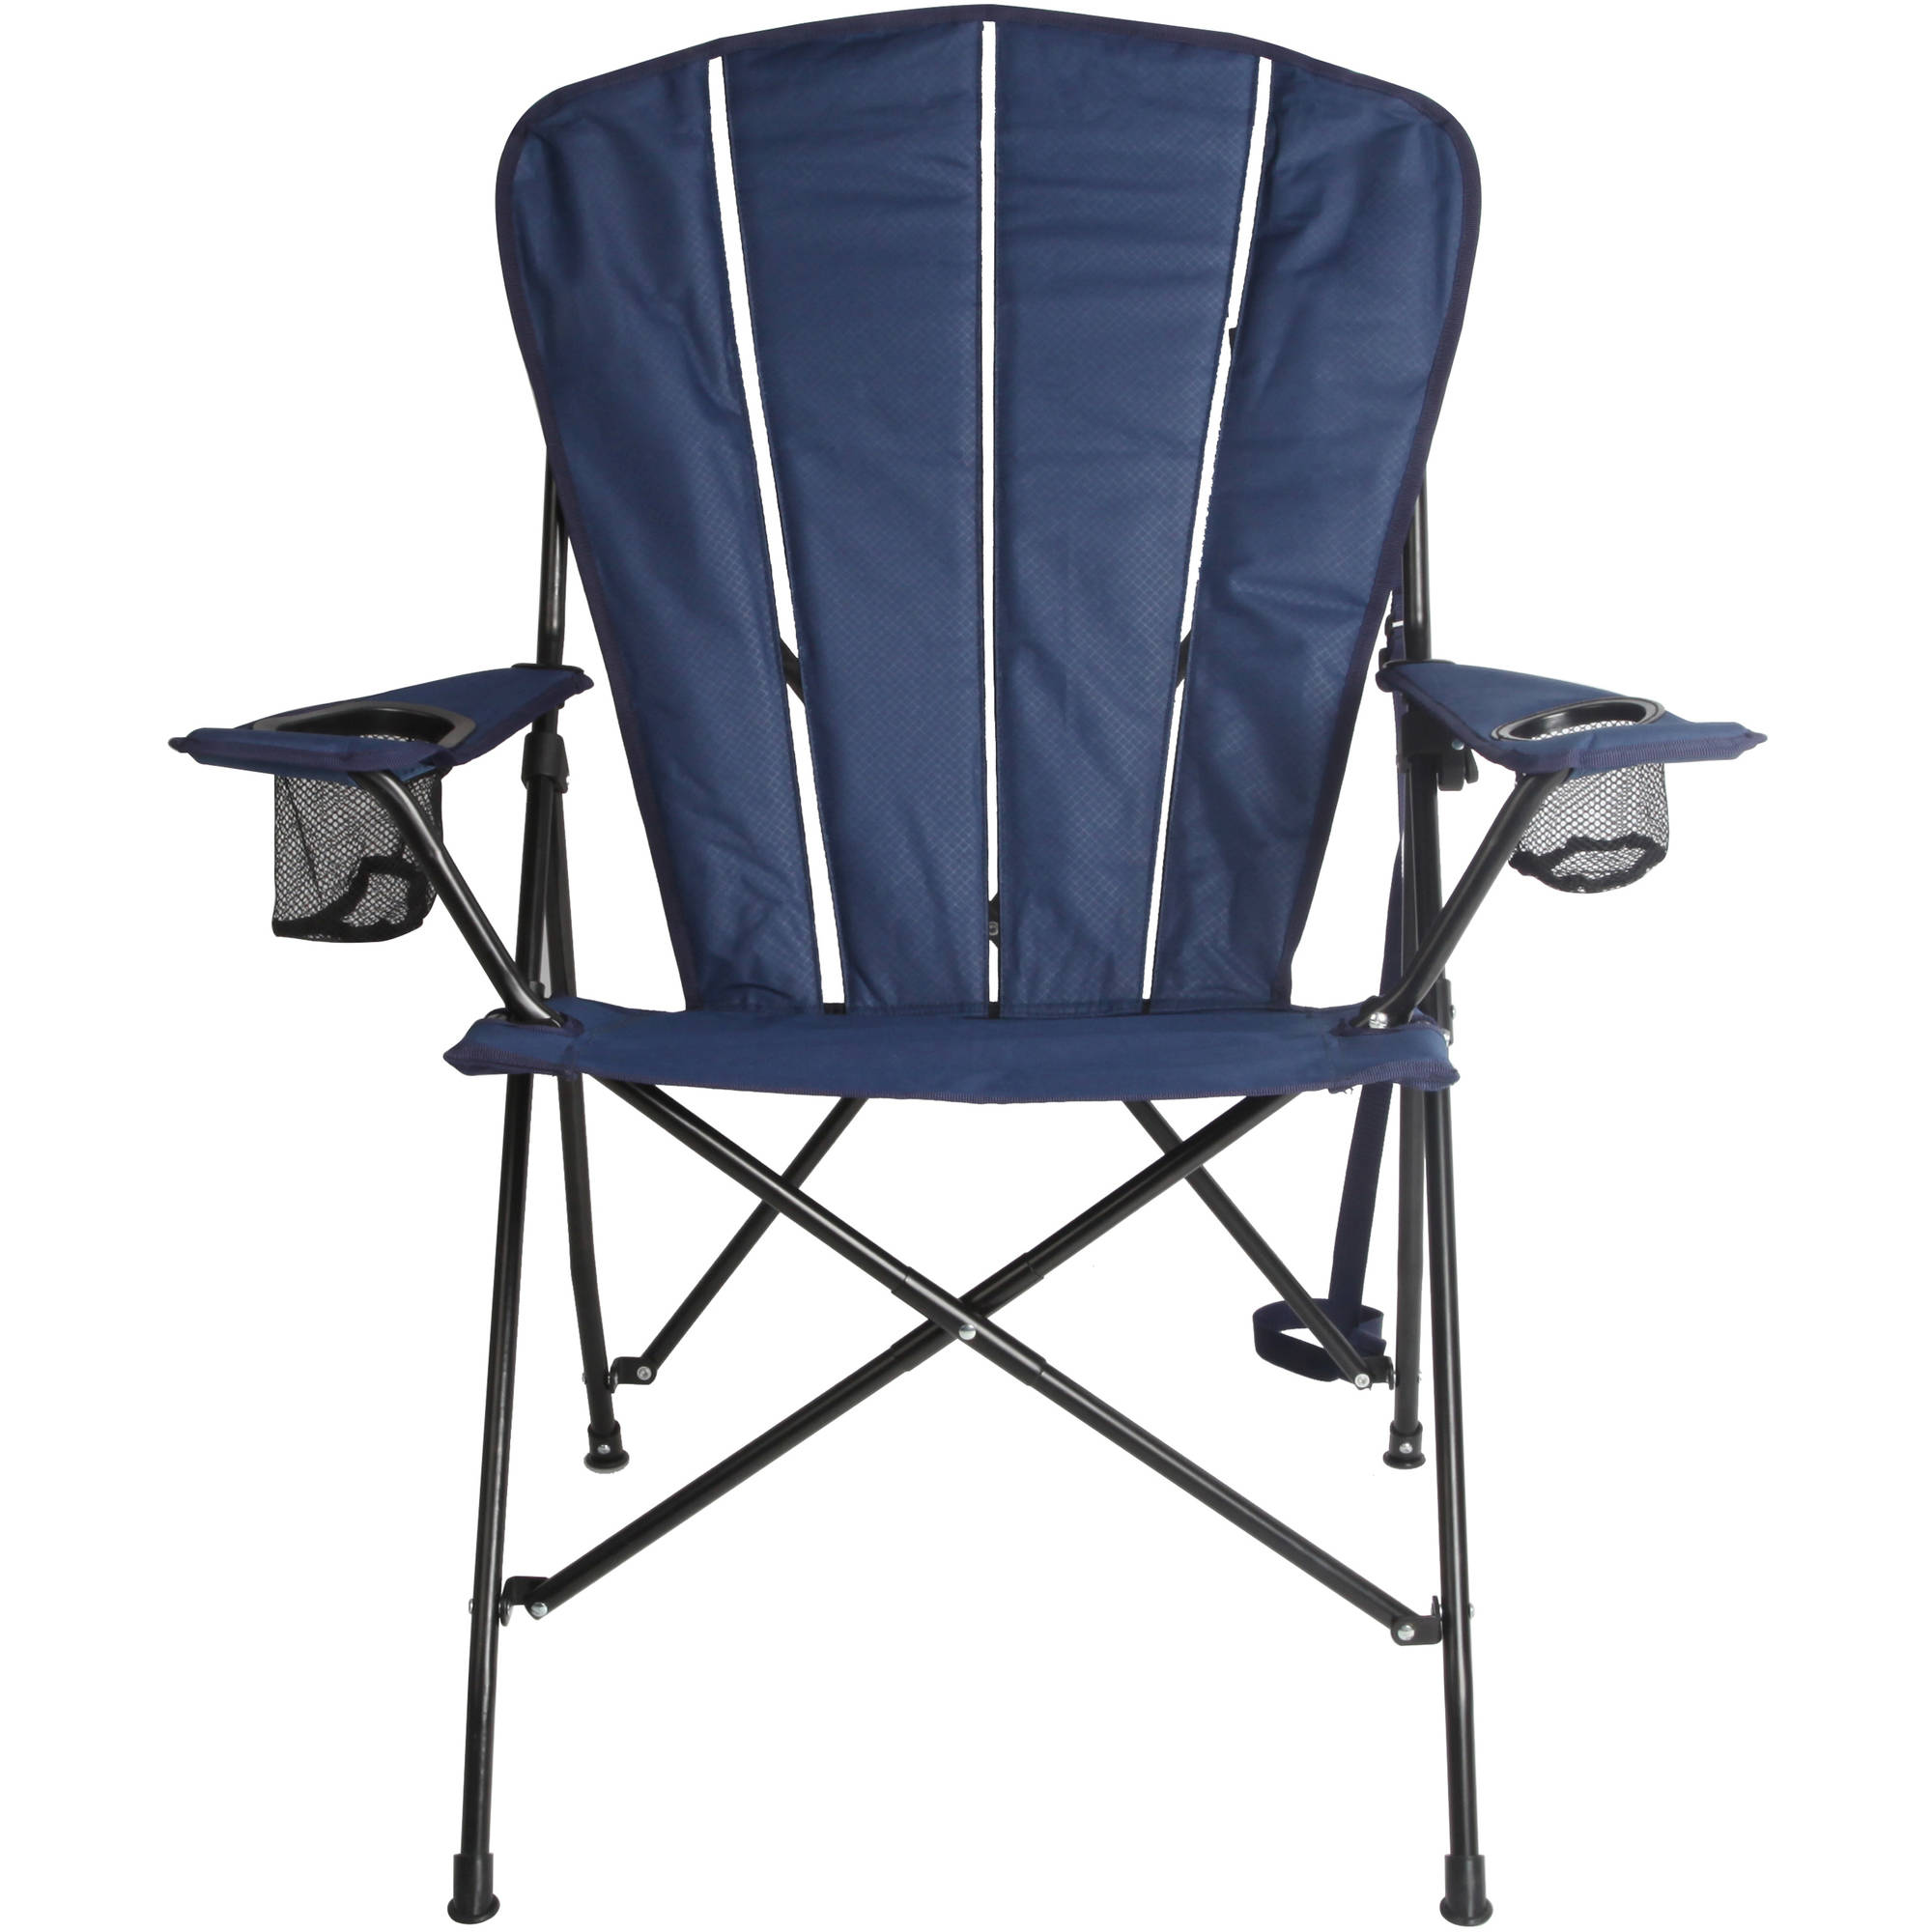 Ozark Trail Deluxe Camping Adirondack Chair, Navy